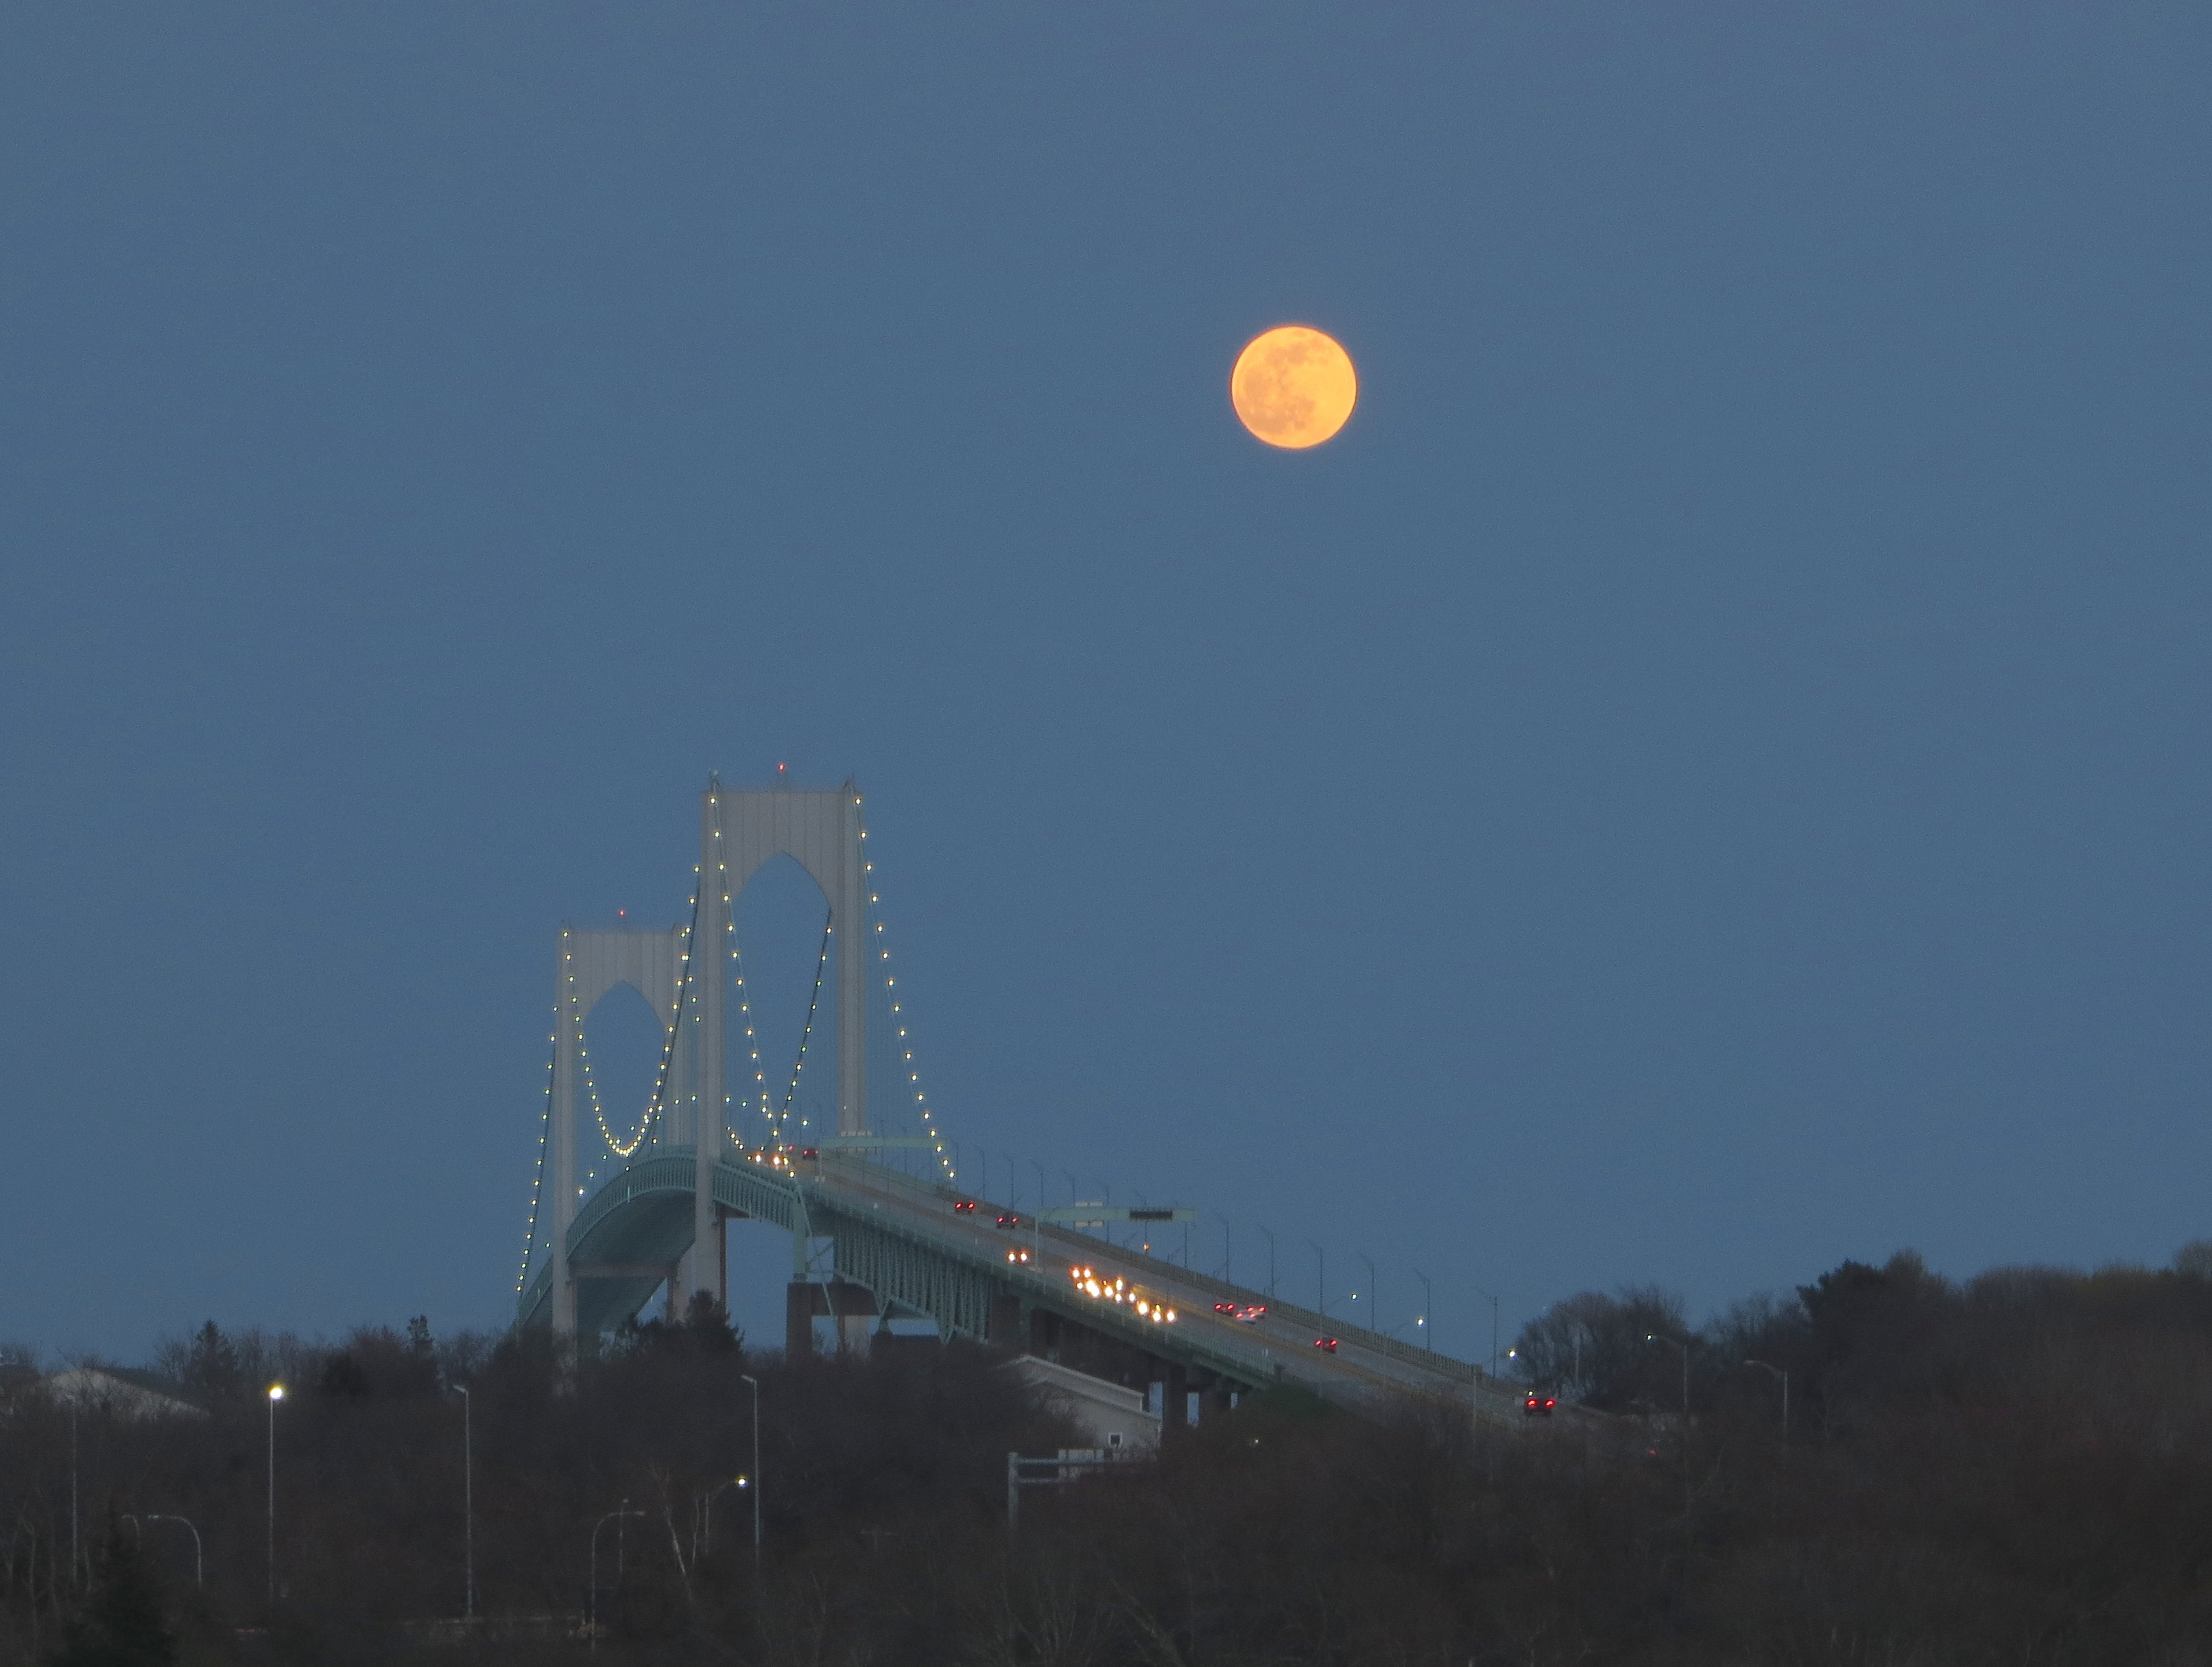 Moon over the Newport Bridge